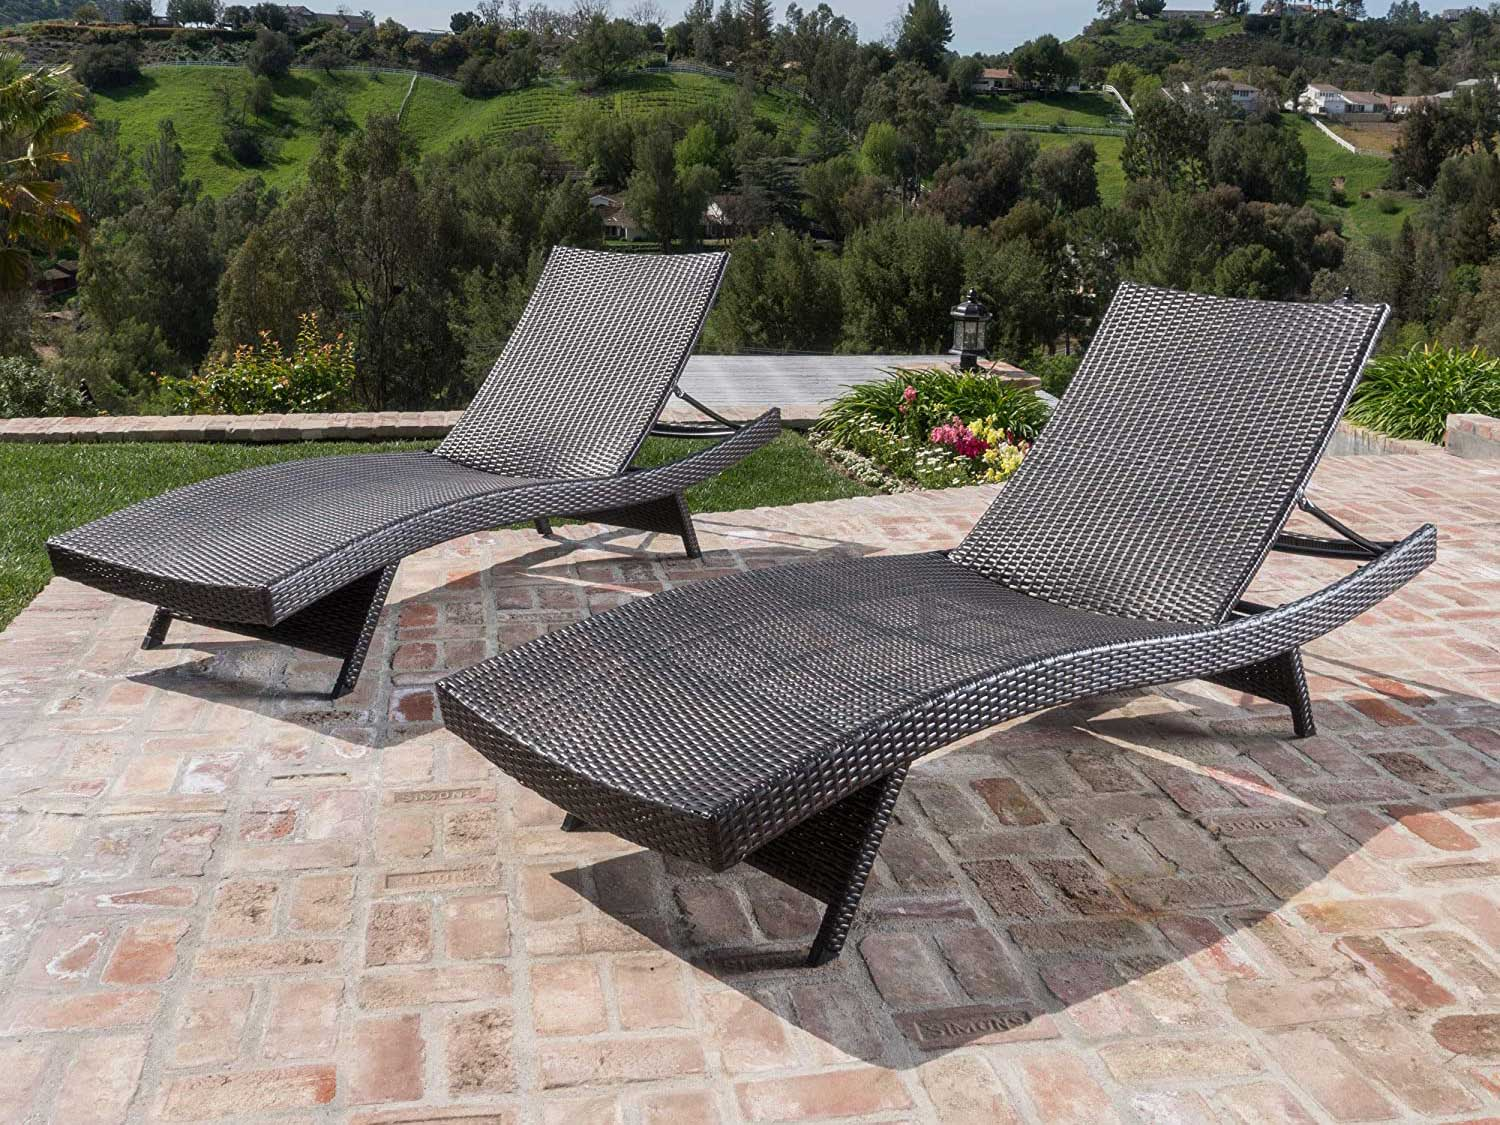 Chaise lounge on patio.